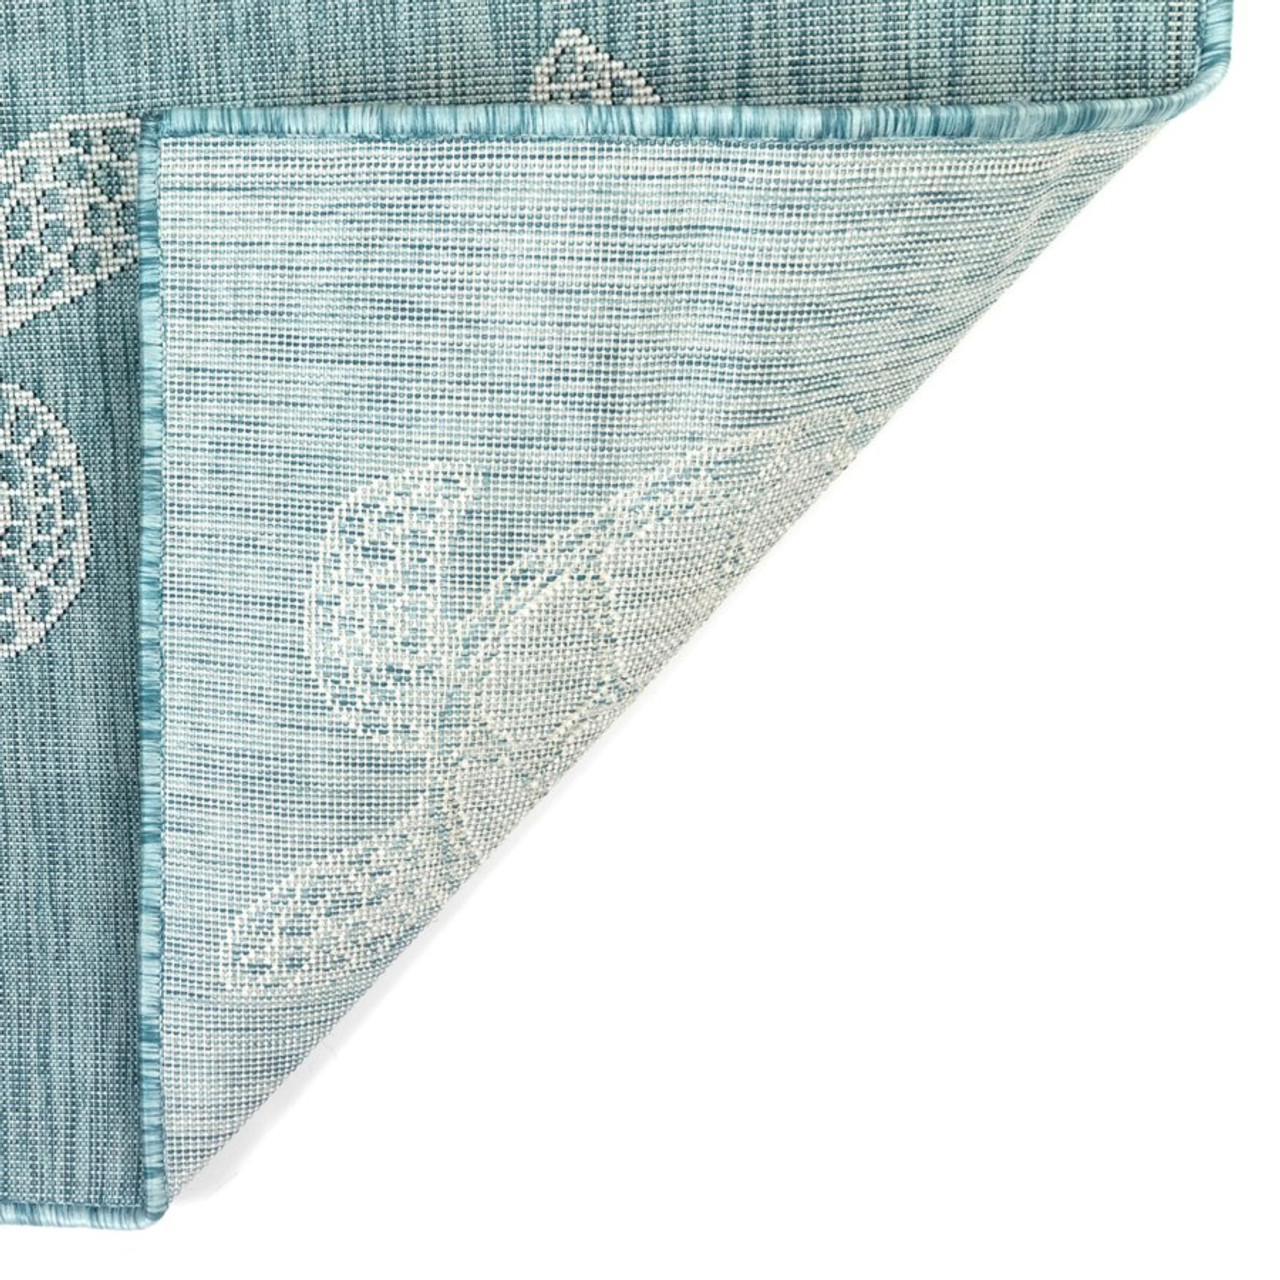 Aqua Carmel Sea Turtles Indoor/Outdoor Rug - Backing